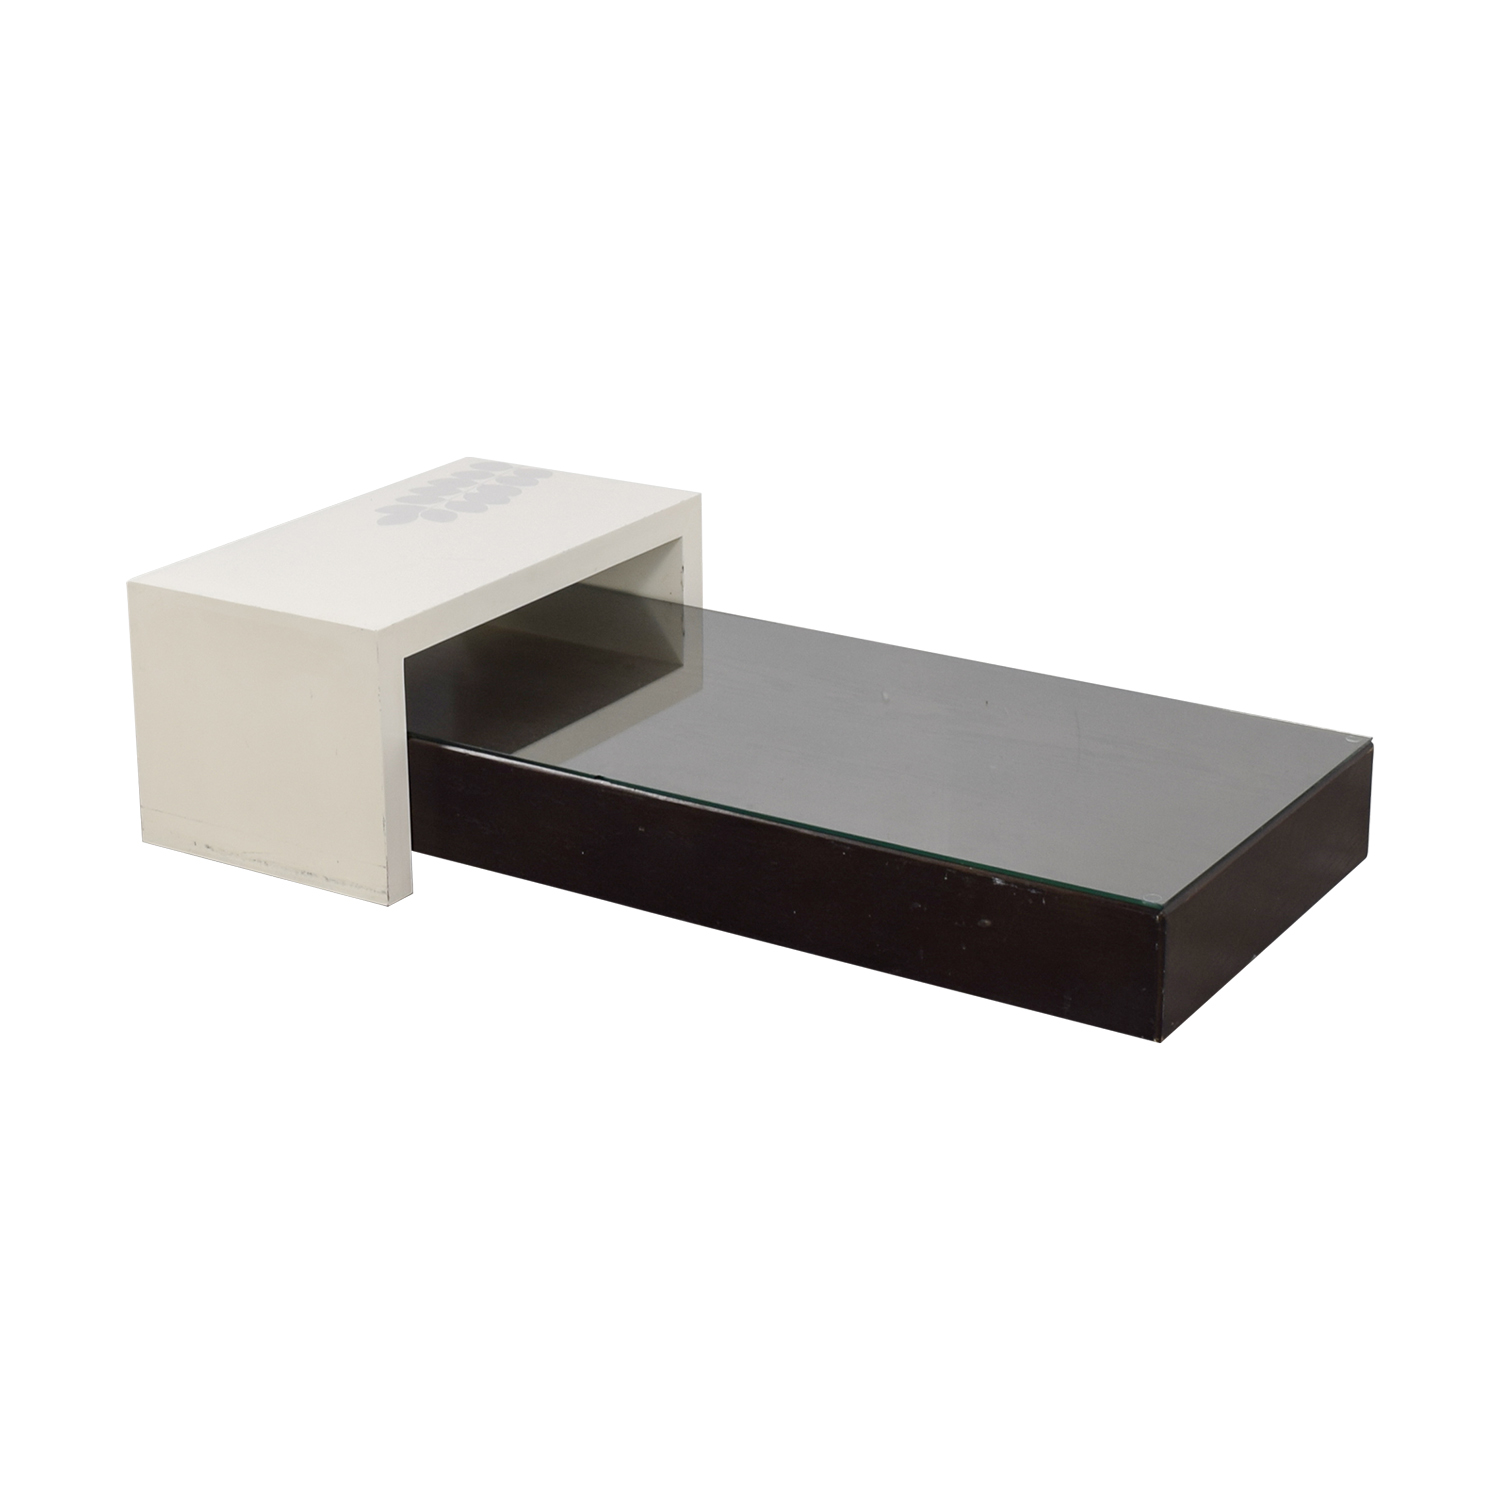 West Elm West Elm Black Platform Coffee Table with White Bridge price